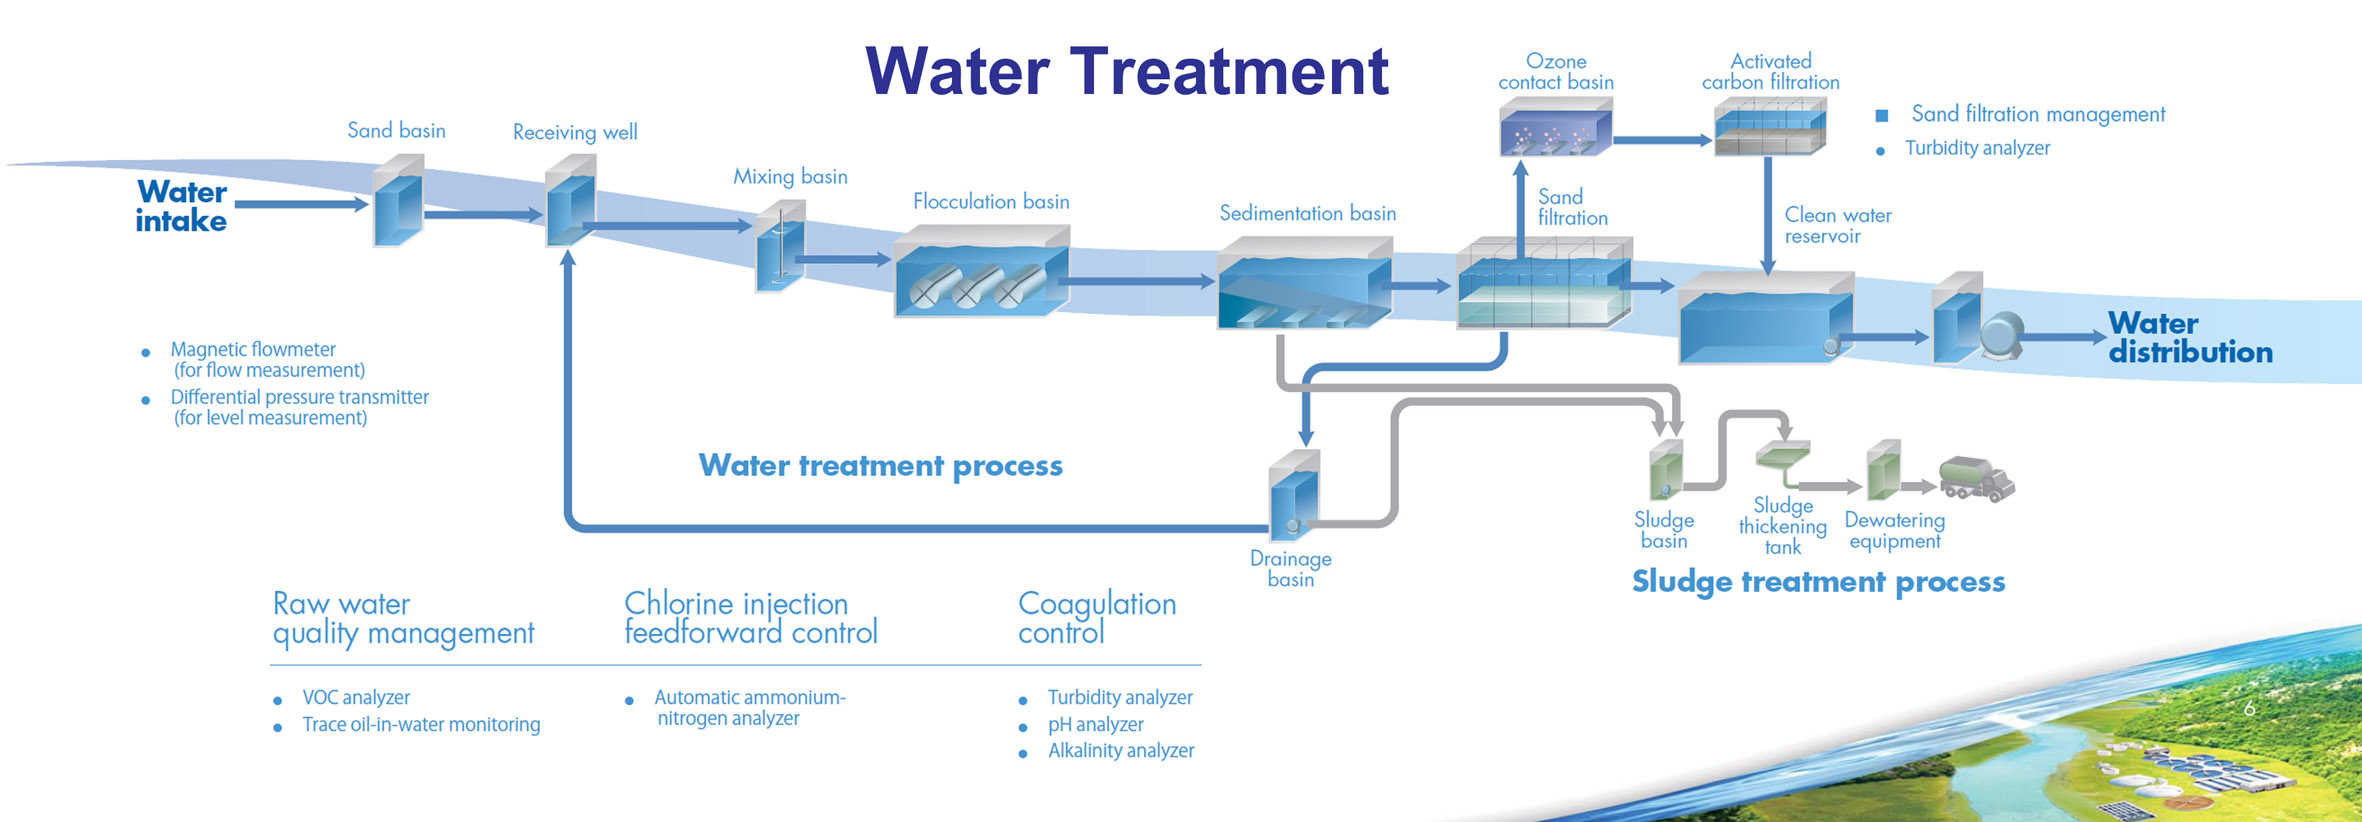 Water Treatment Yokogawa Electric Corporation